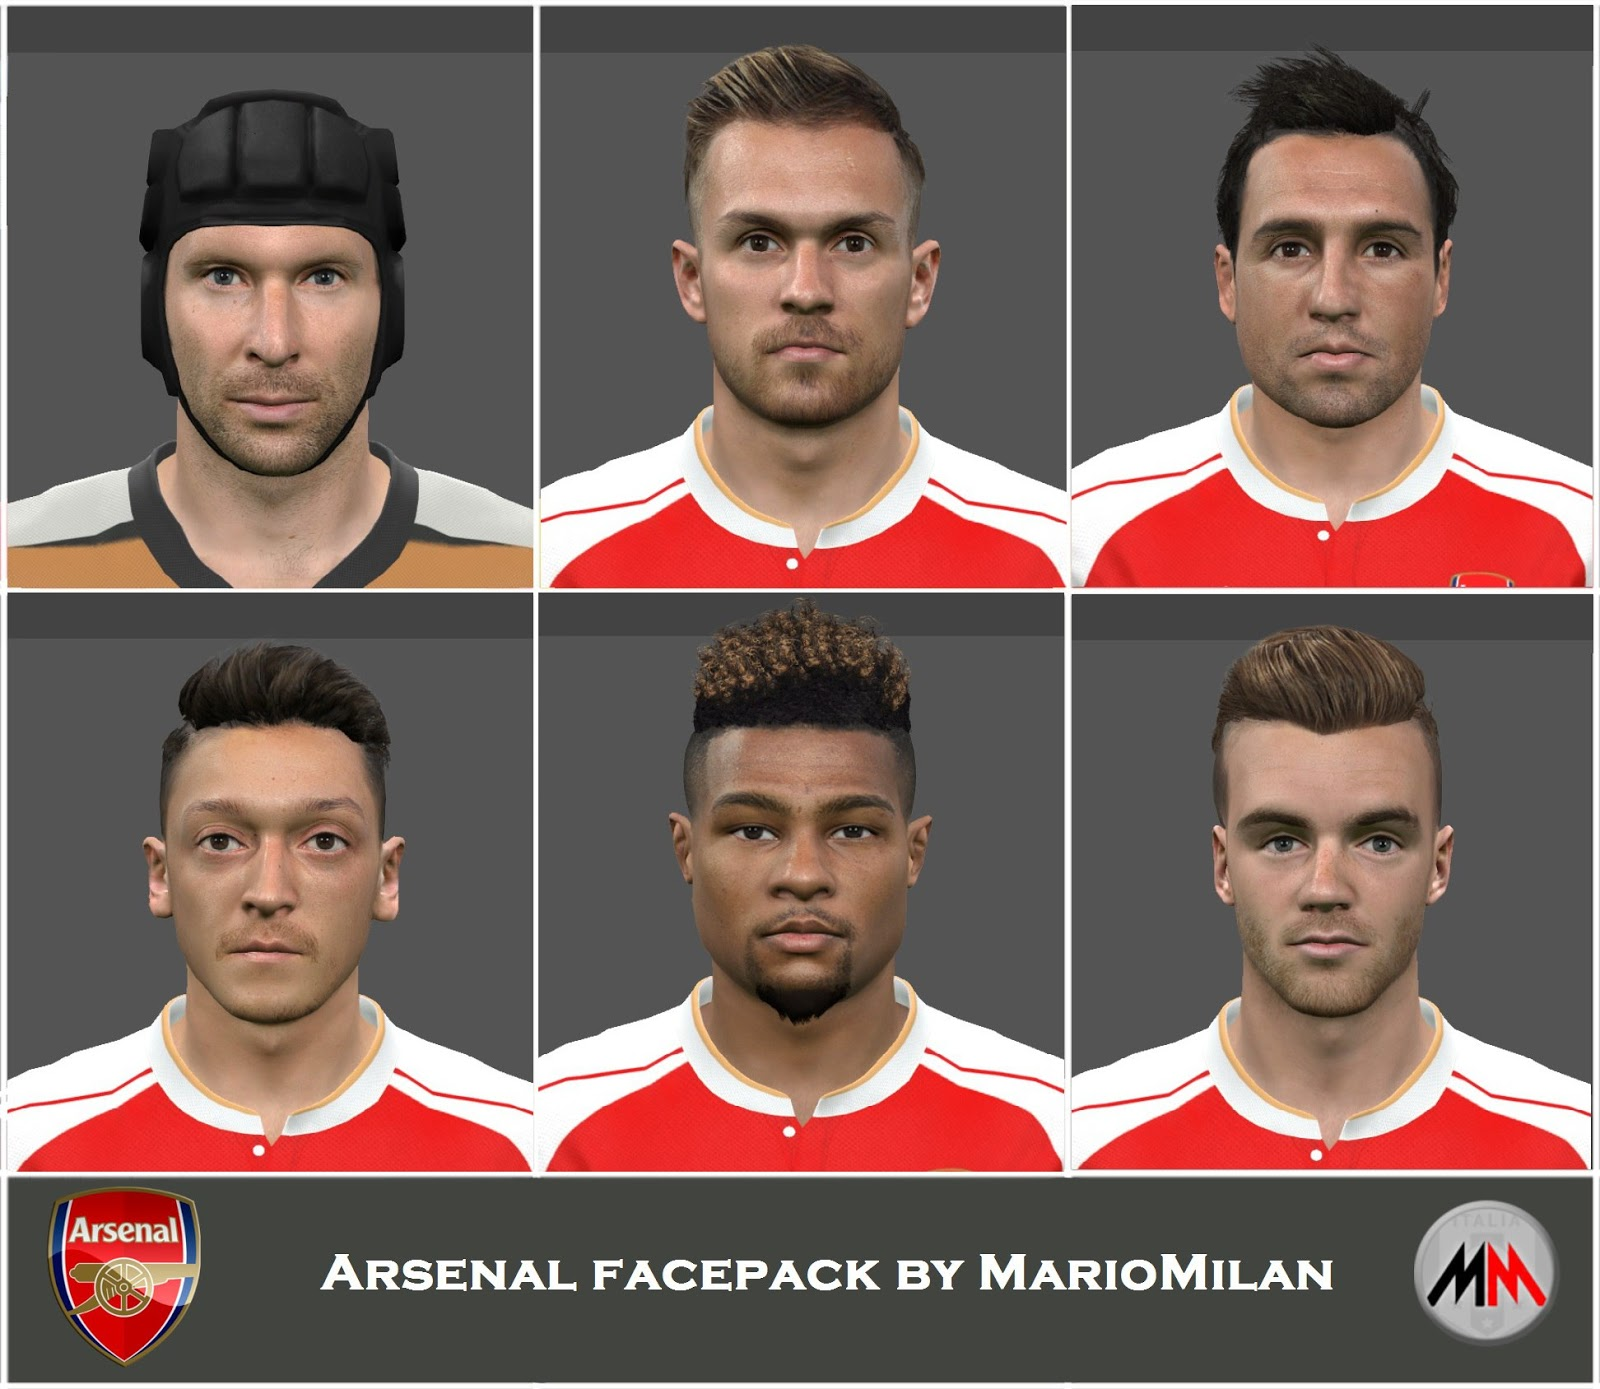 a05578caf22 PES 2015 Arsenal facepack by MarioMilan - Our Patch 31